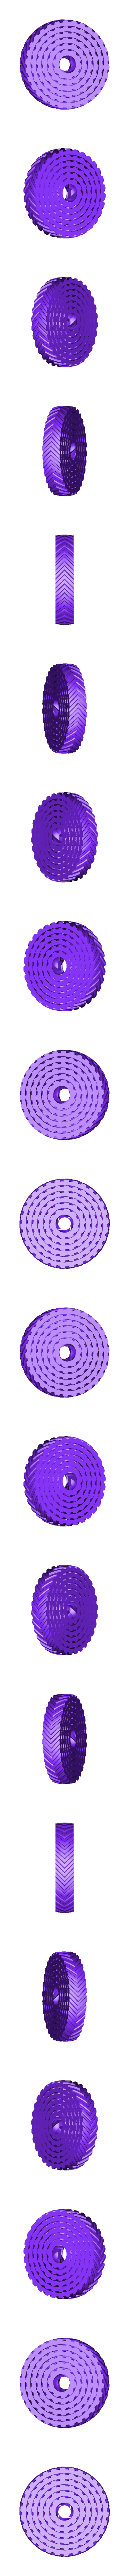 gyro_gears.stl Download free STL file GyroGears • 3D print object, hitchabout